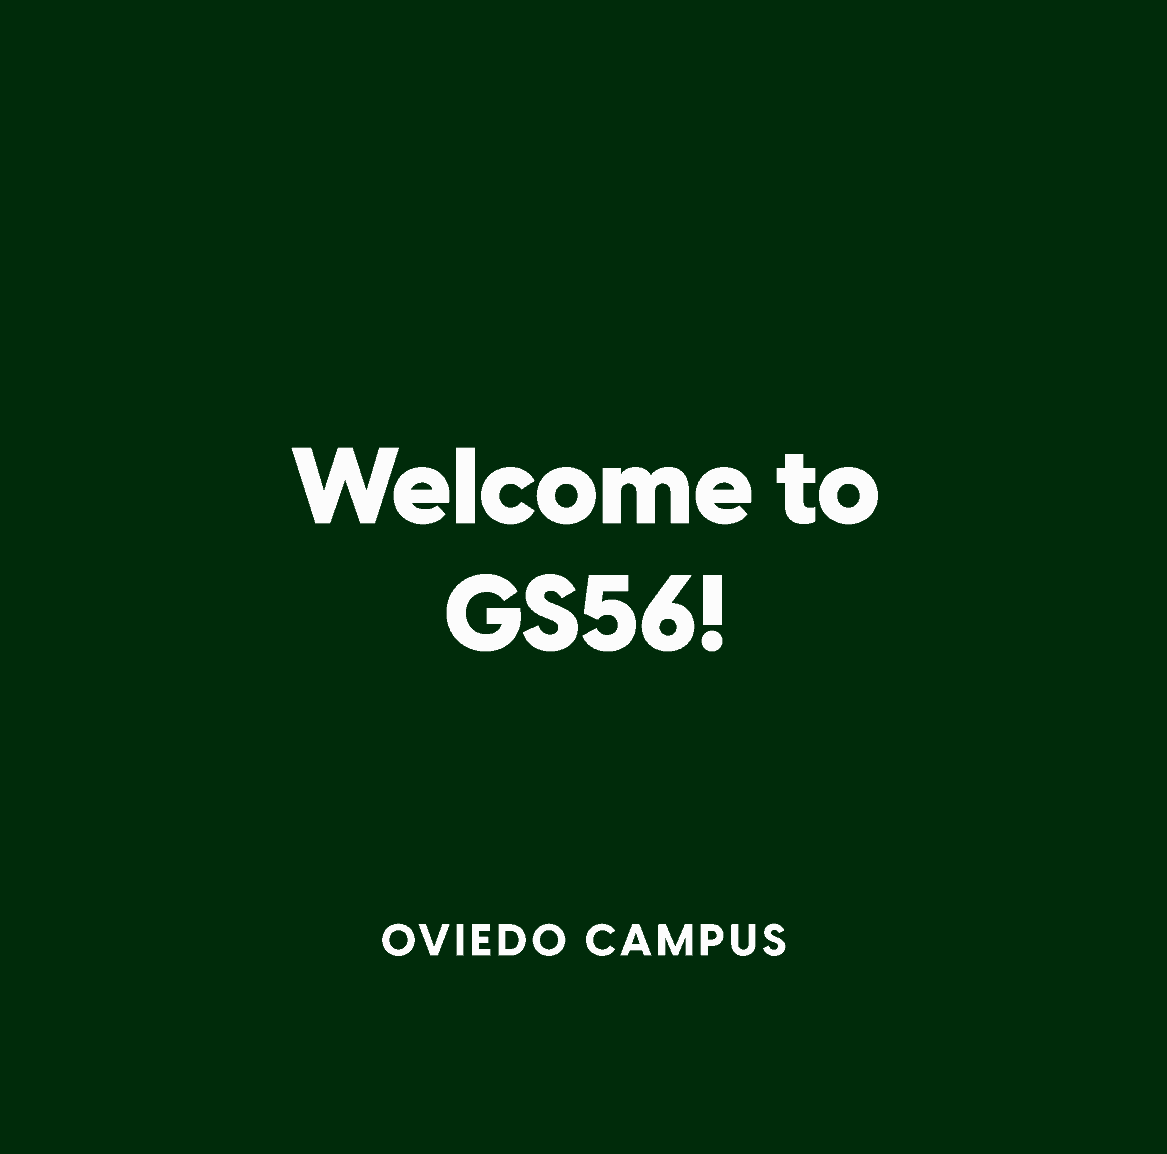 Oviedo Welcome to GS56!